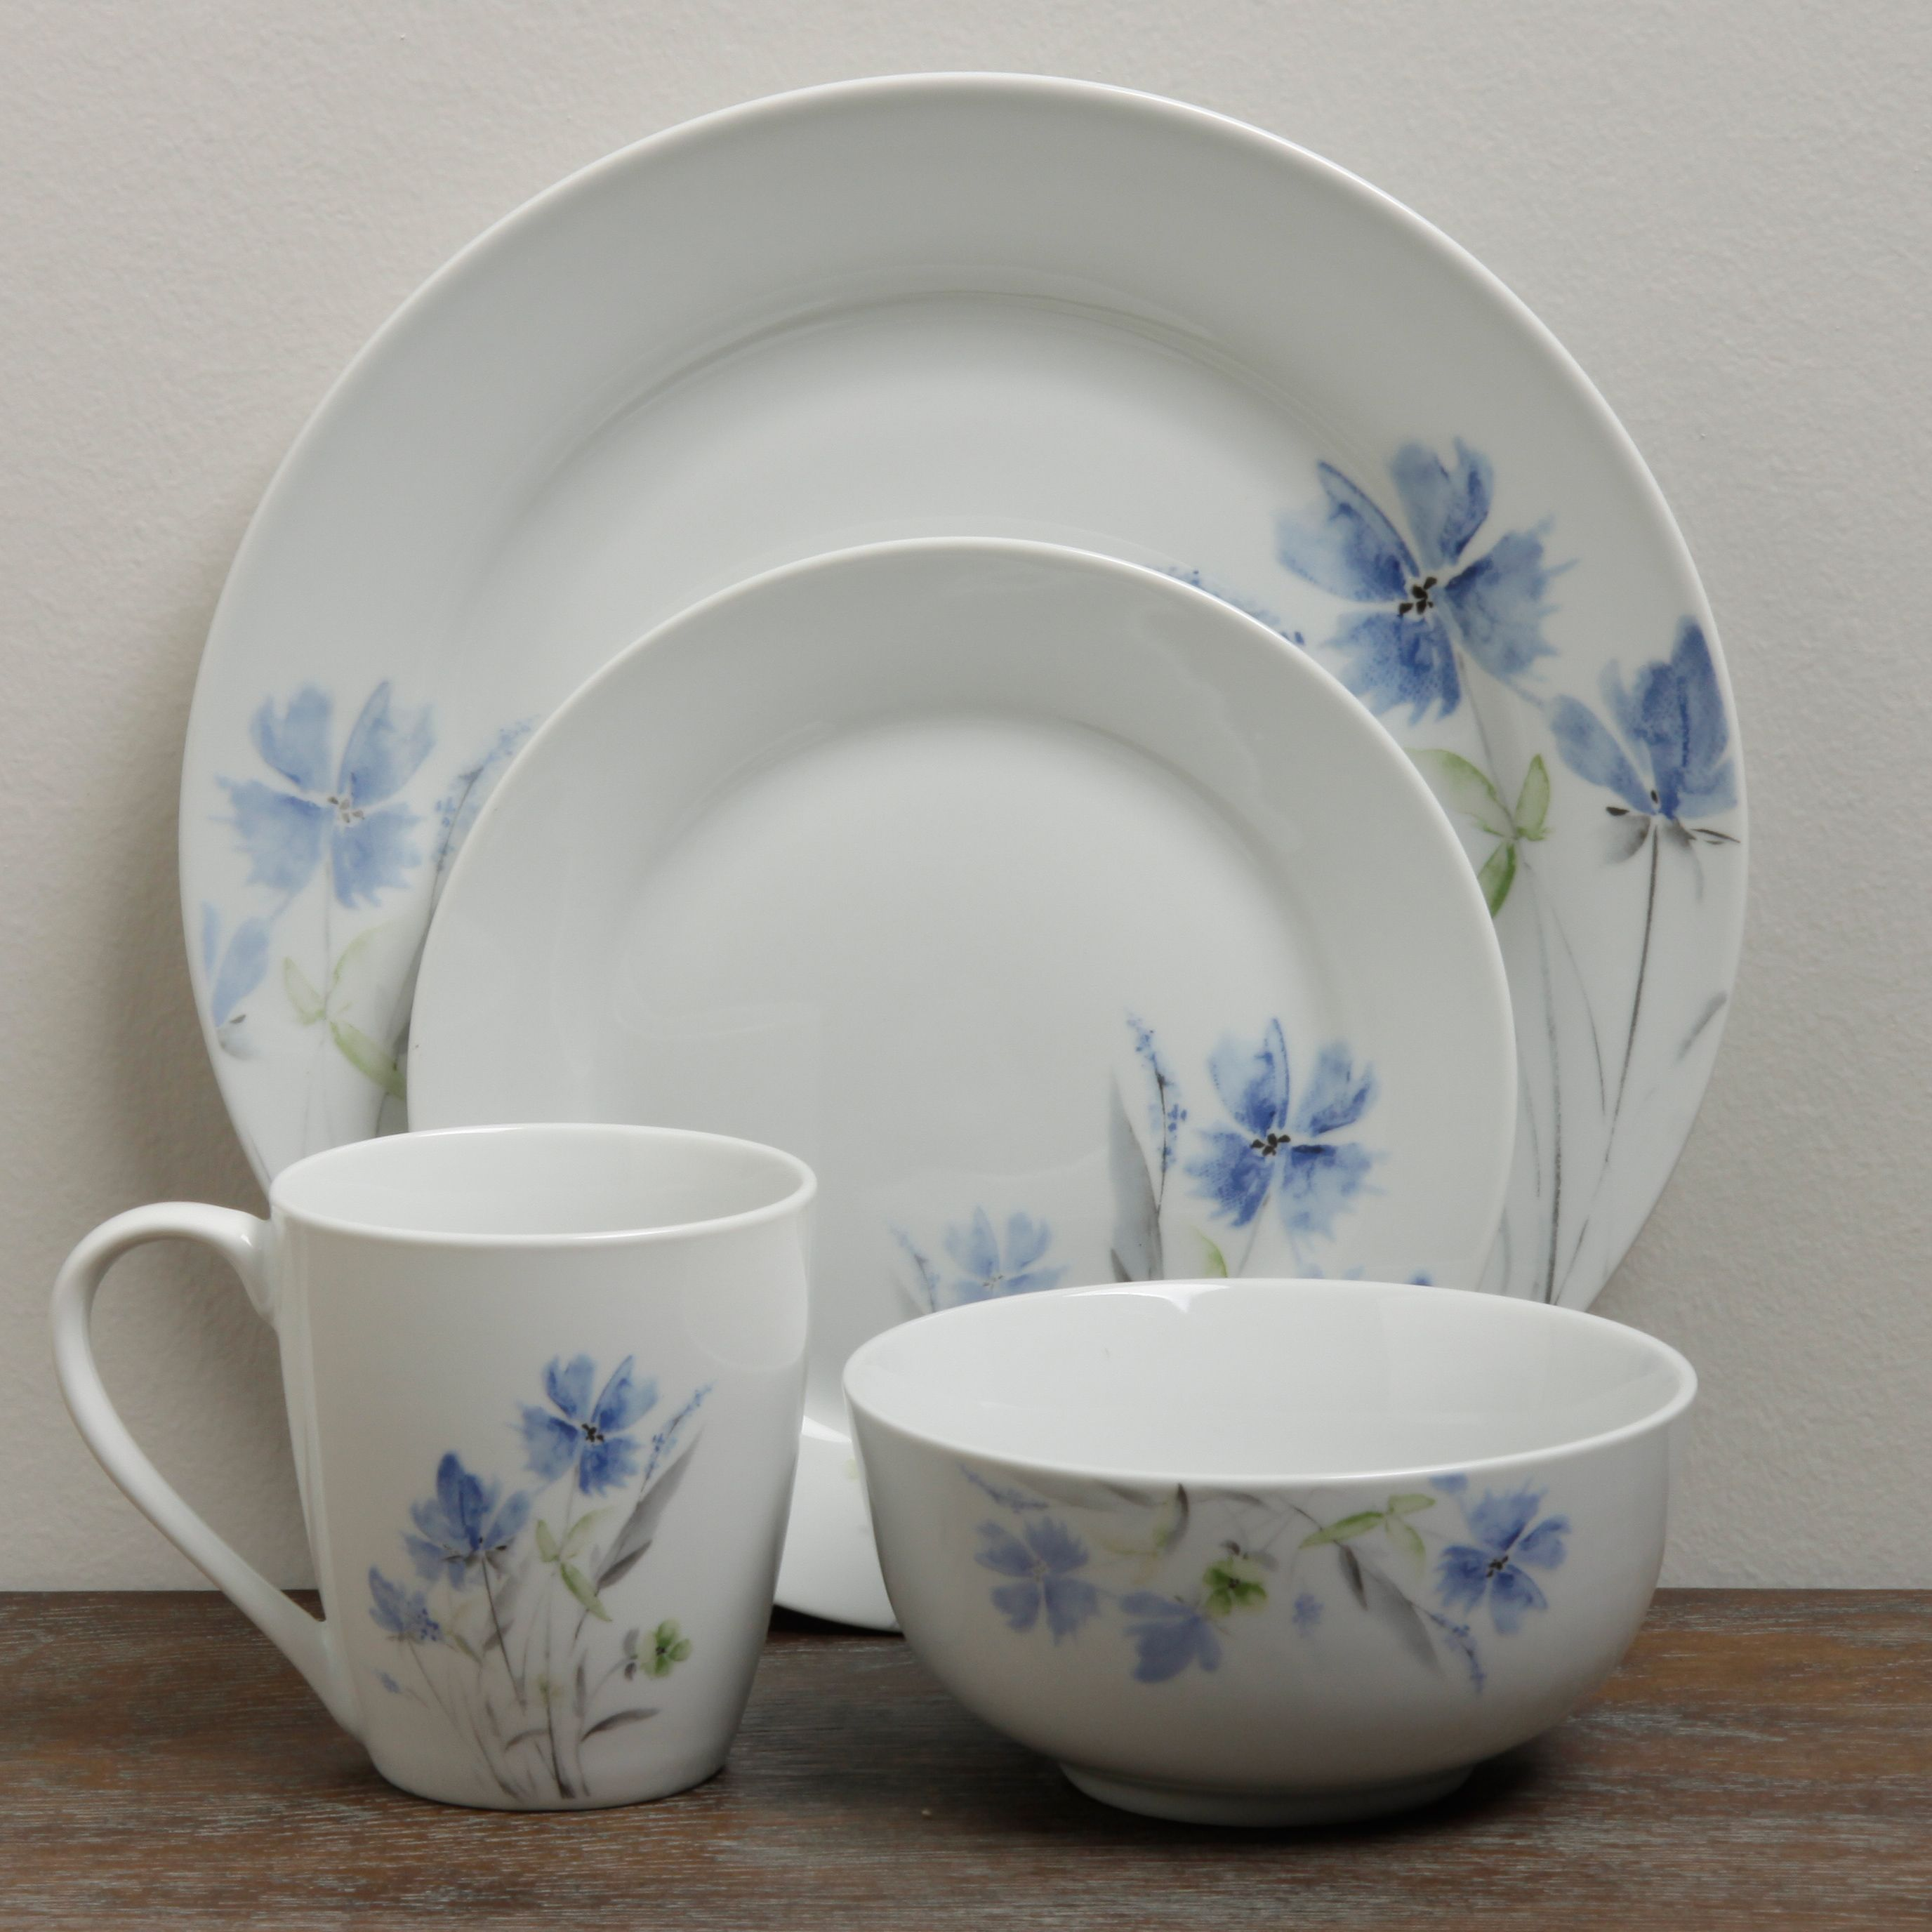 Overstock.com Online Shopping - Bedding Furniture Electronics Jewelry Clothing u0026 more. Casual DinnerwareDinnerware SetsPorcelain ... & The floral design of this elegant 16-piece Wildflower dinnerware set ...